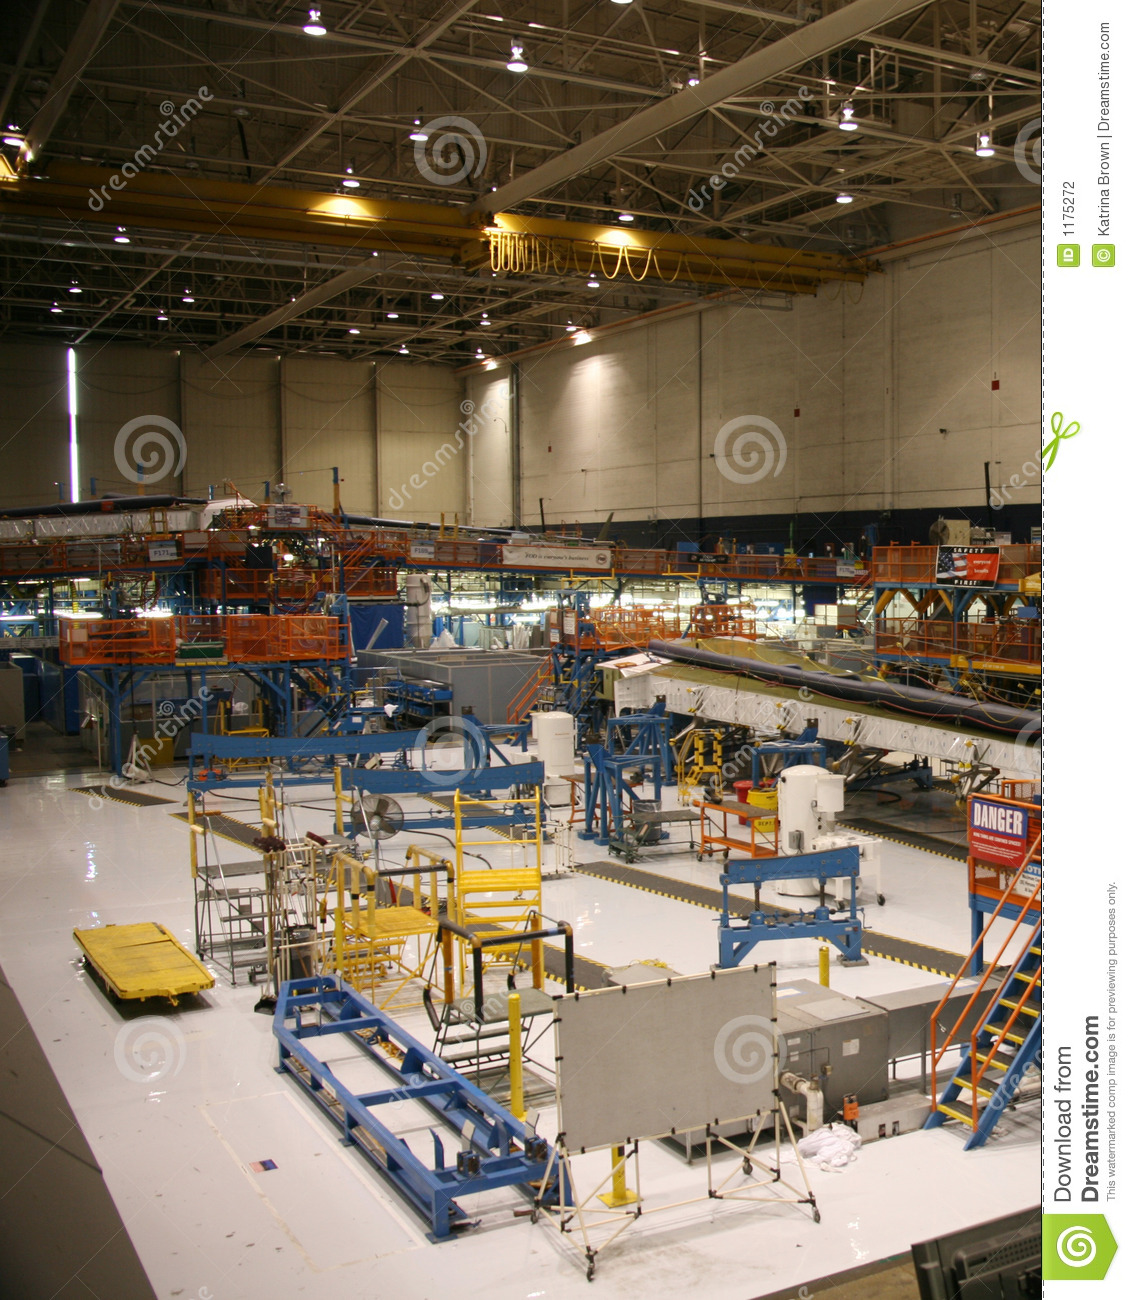 inside aerospace production facility - photo #25